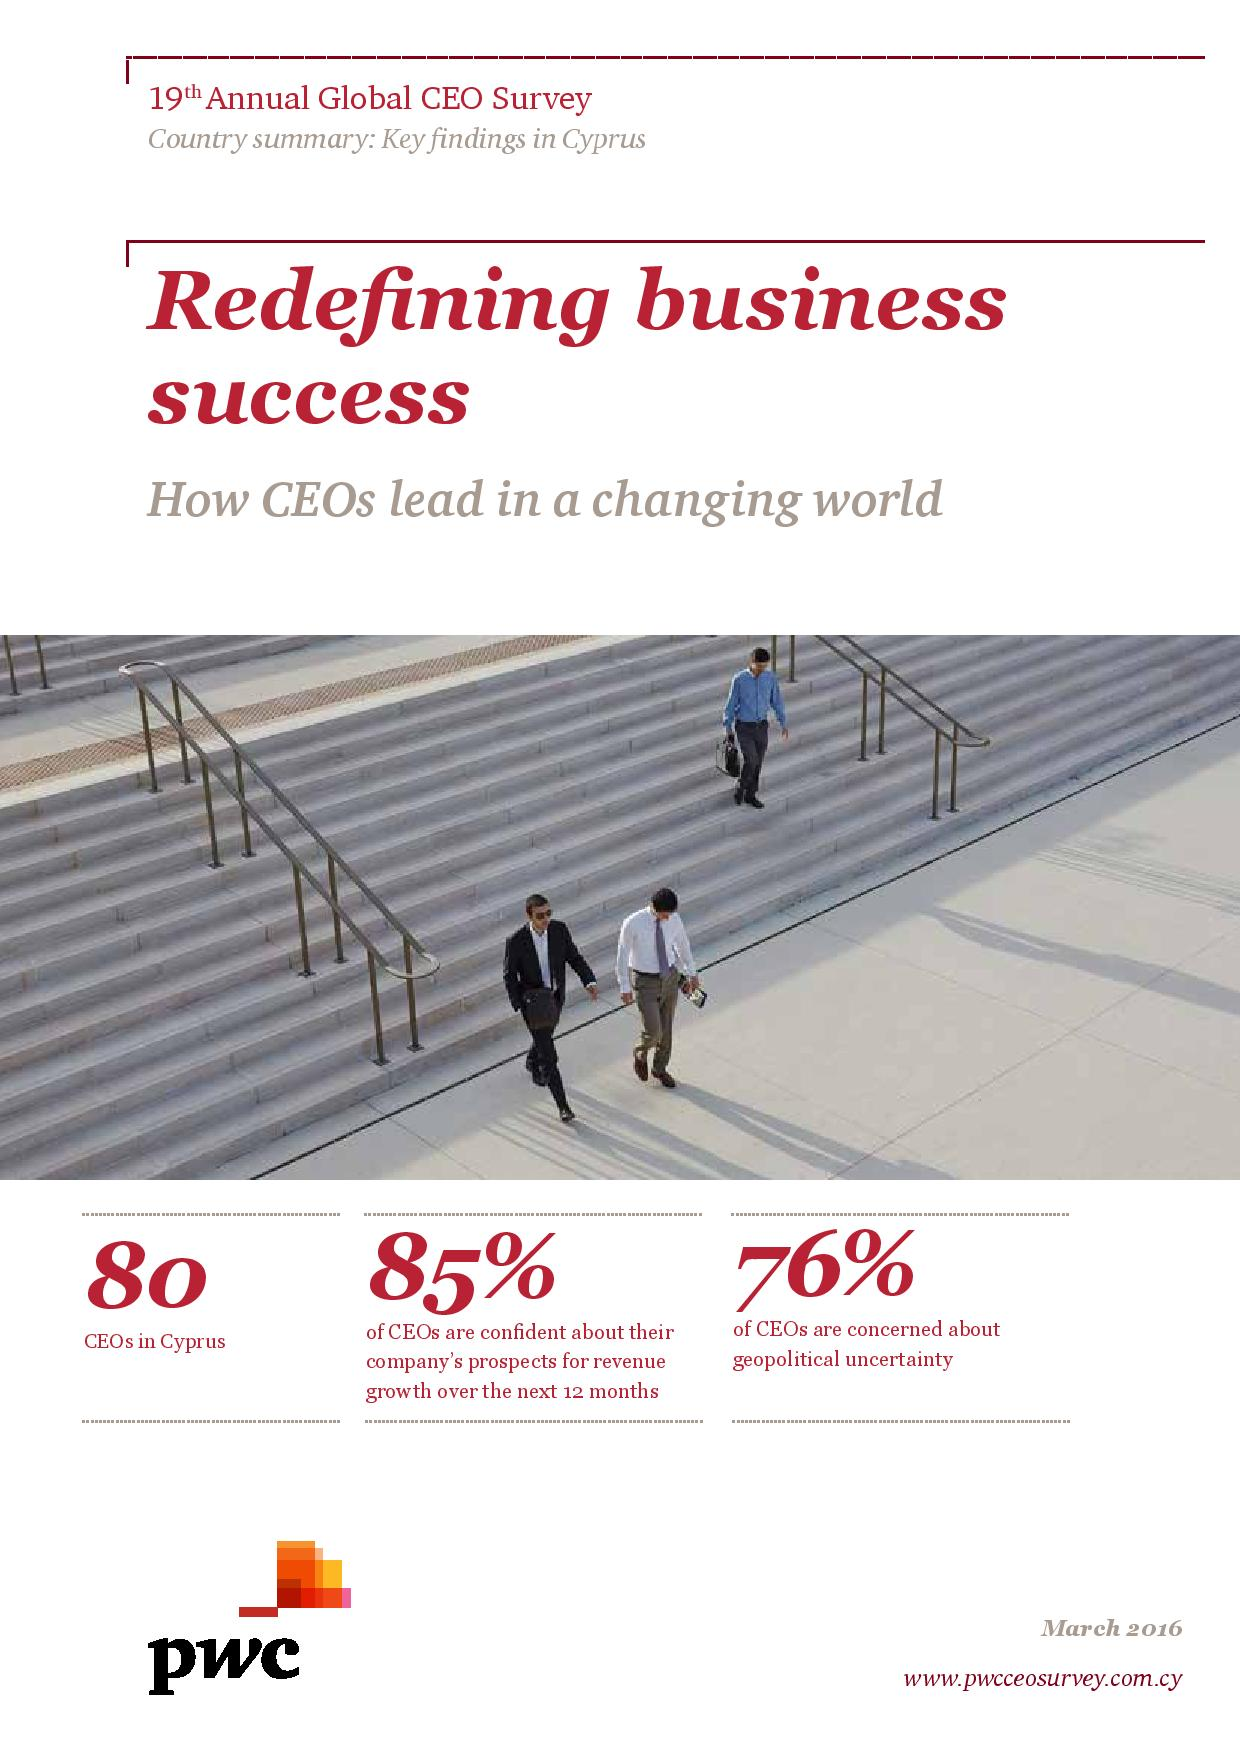 19th Annual Global CEO Survey - Key findings in Cyprus